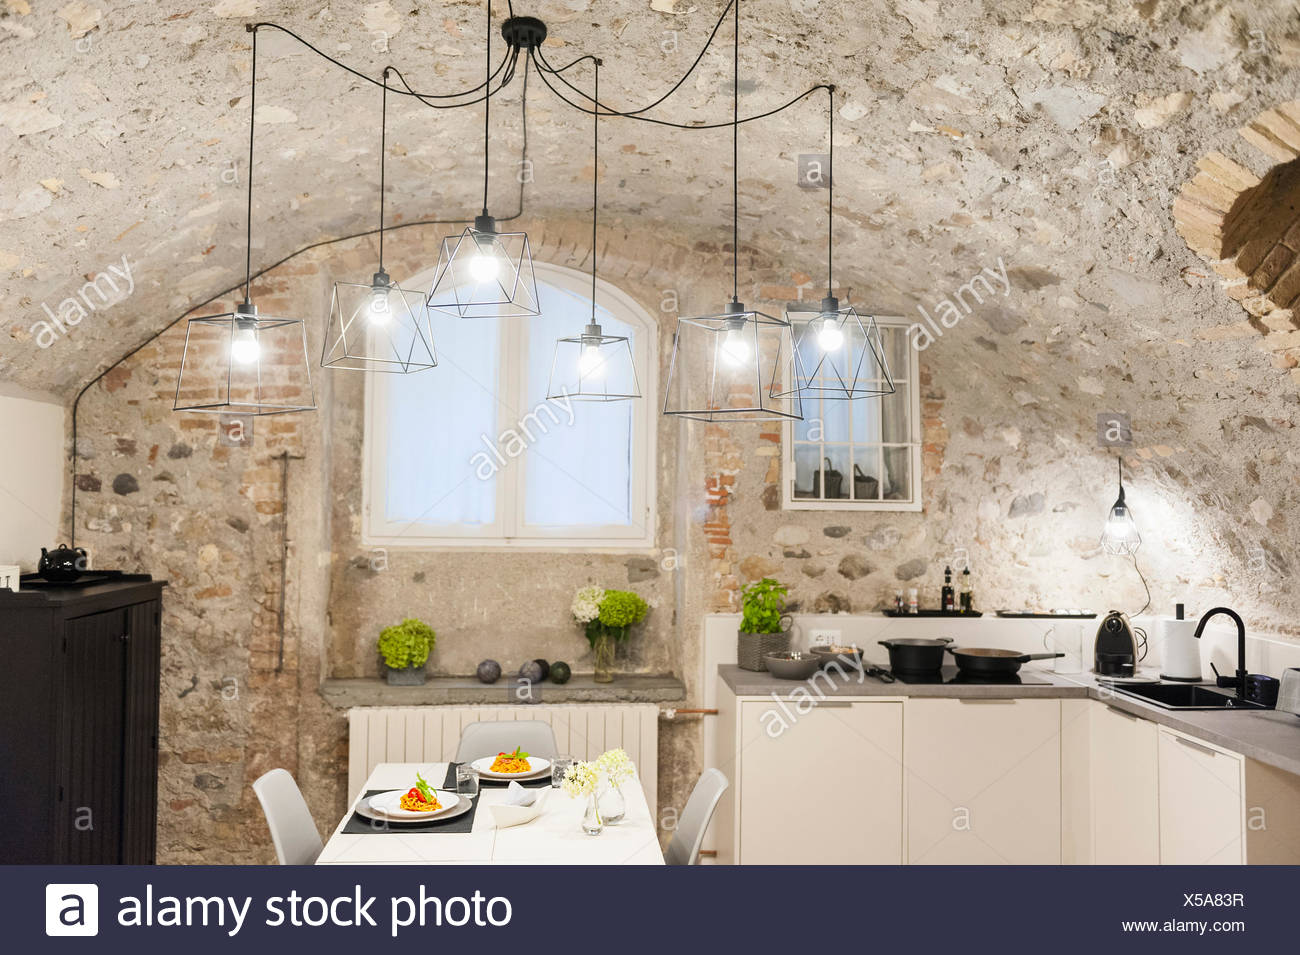 Modern Kitchen In Old Stone House With Freshly Cooked Pasta On Table Stock Photo Alamy